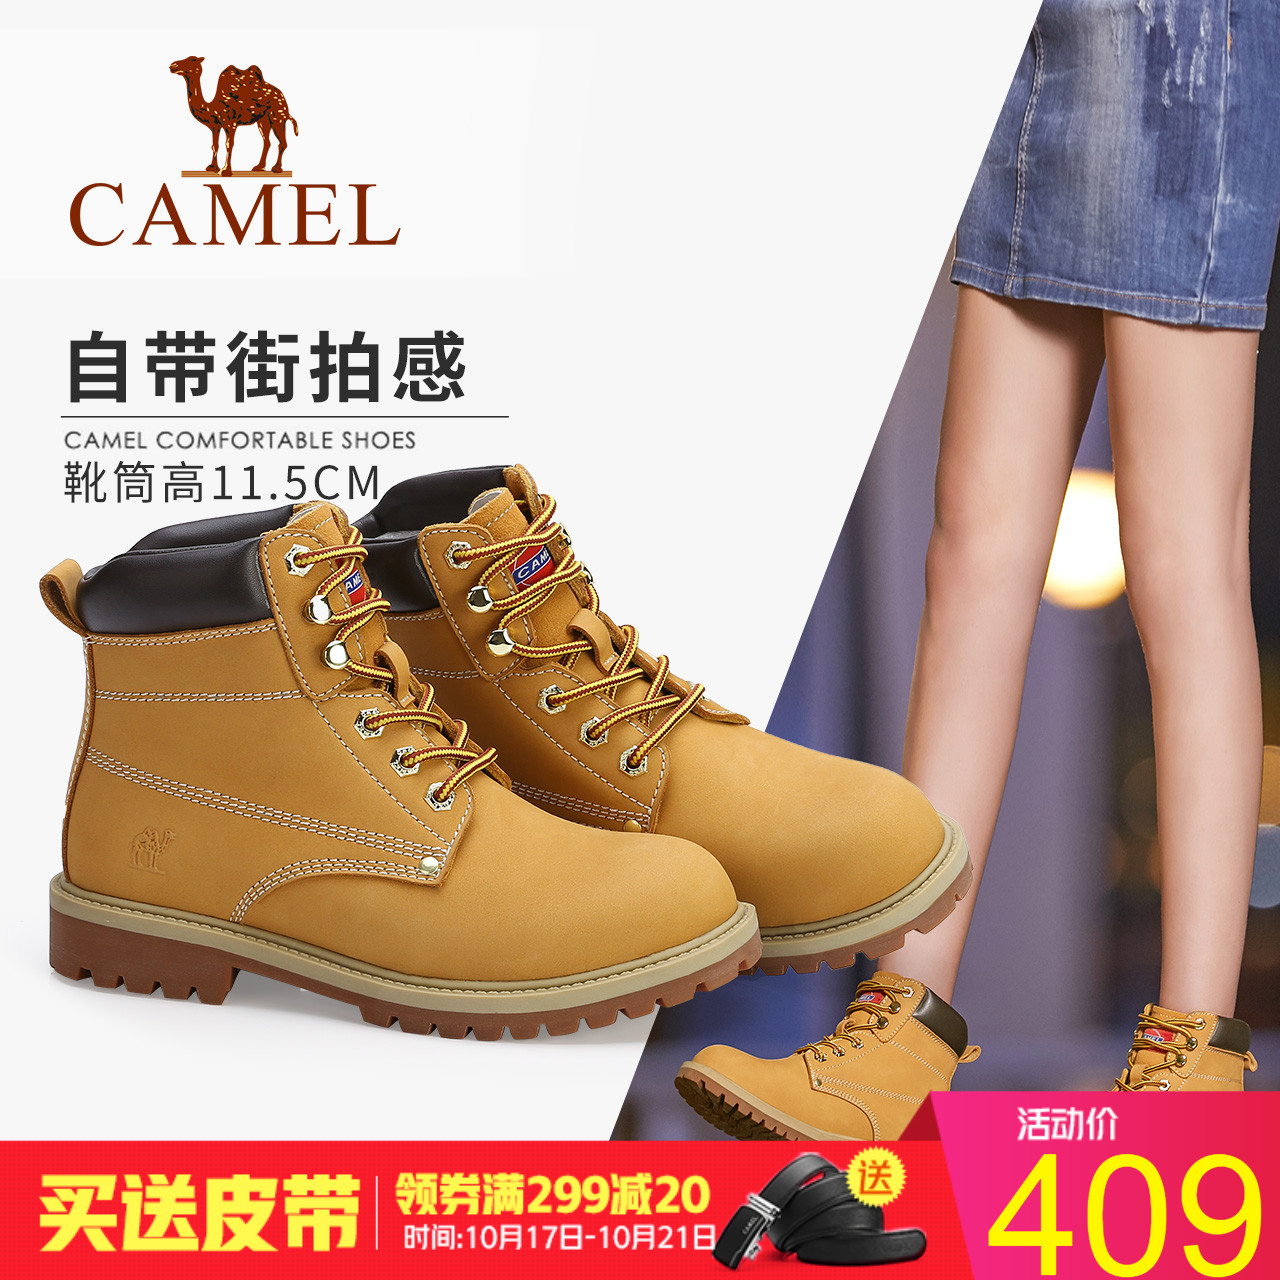 Camel Girls Boots 2009 Winter Leather Fashion Girls Boots Workwear Shoes, Flat Bottom Martin Boots, British Wind Shoes